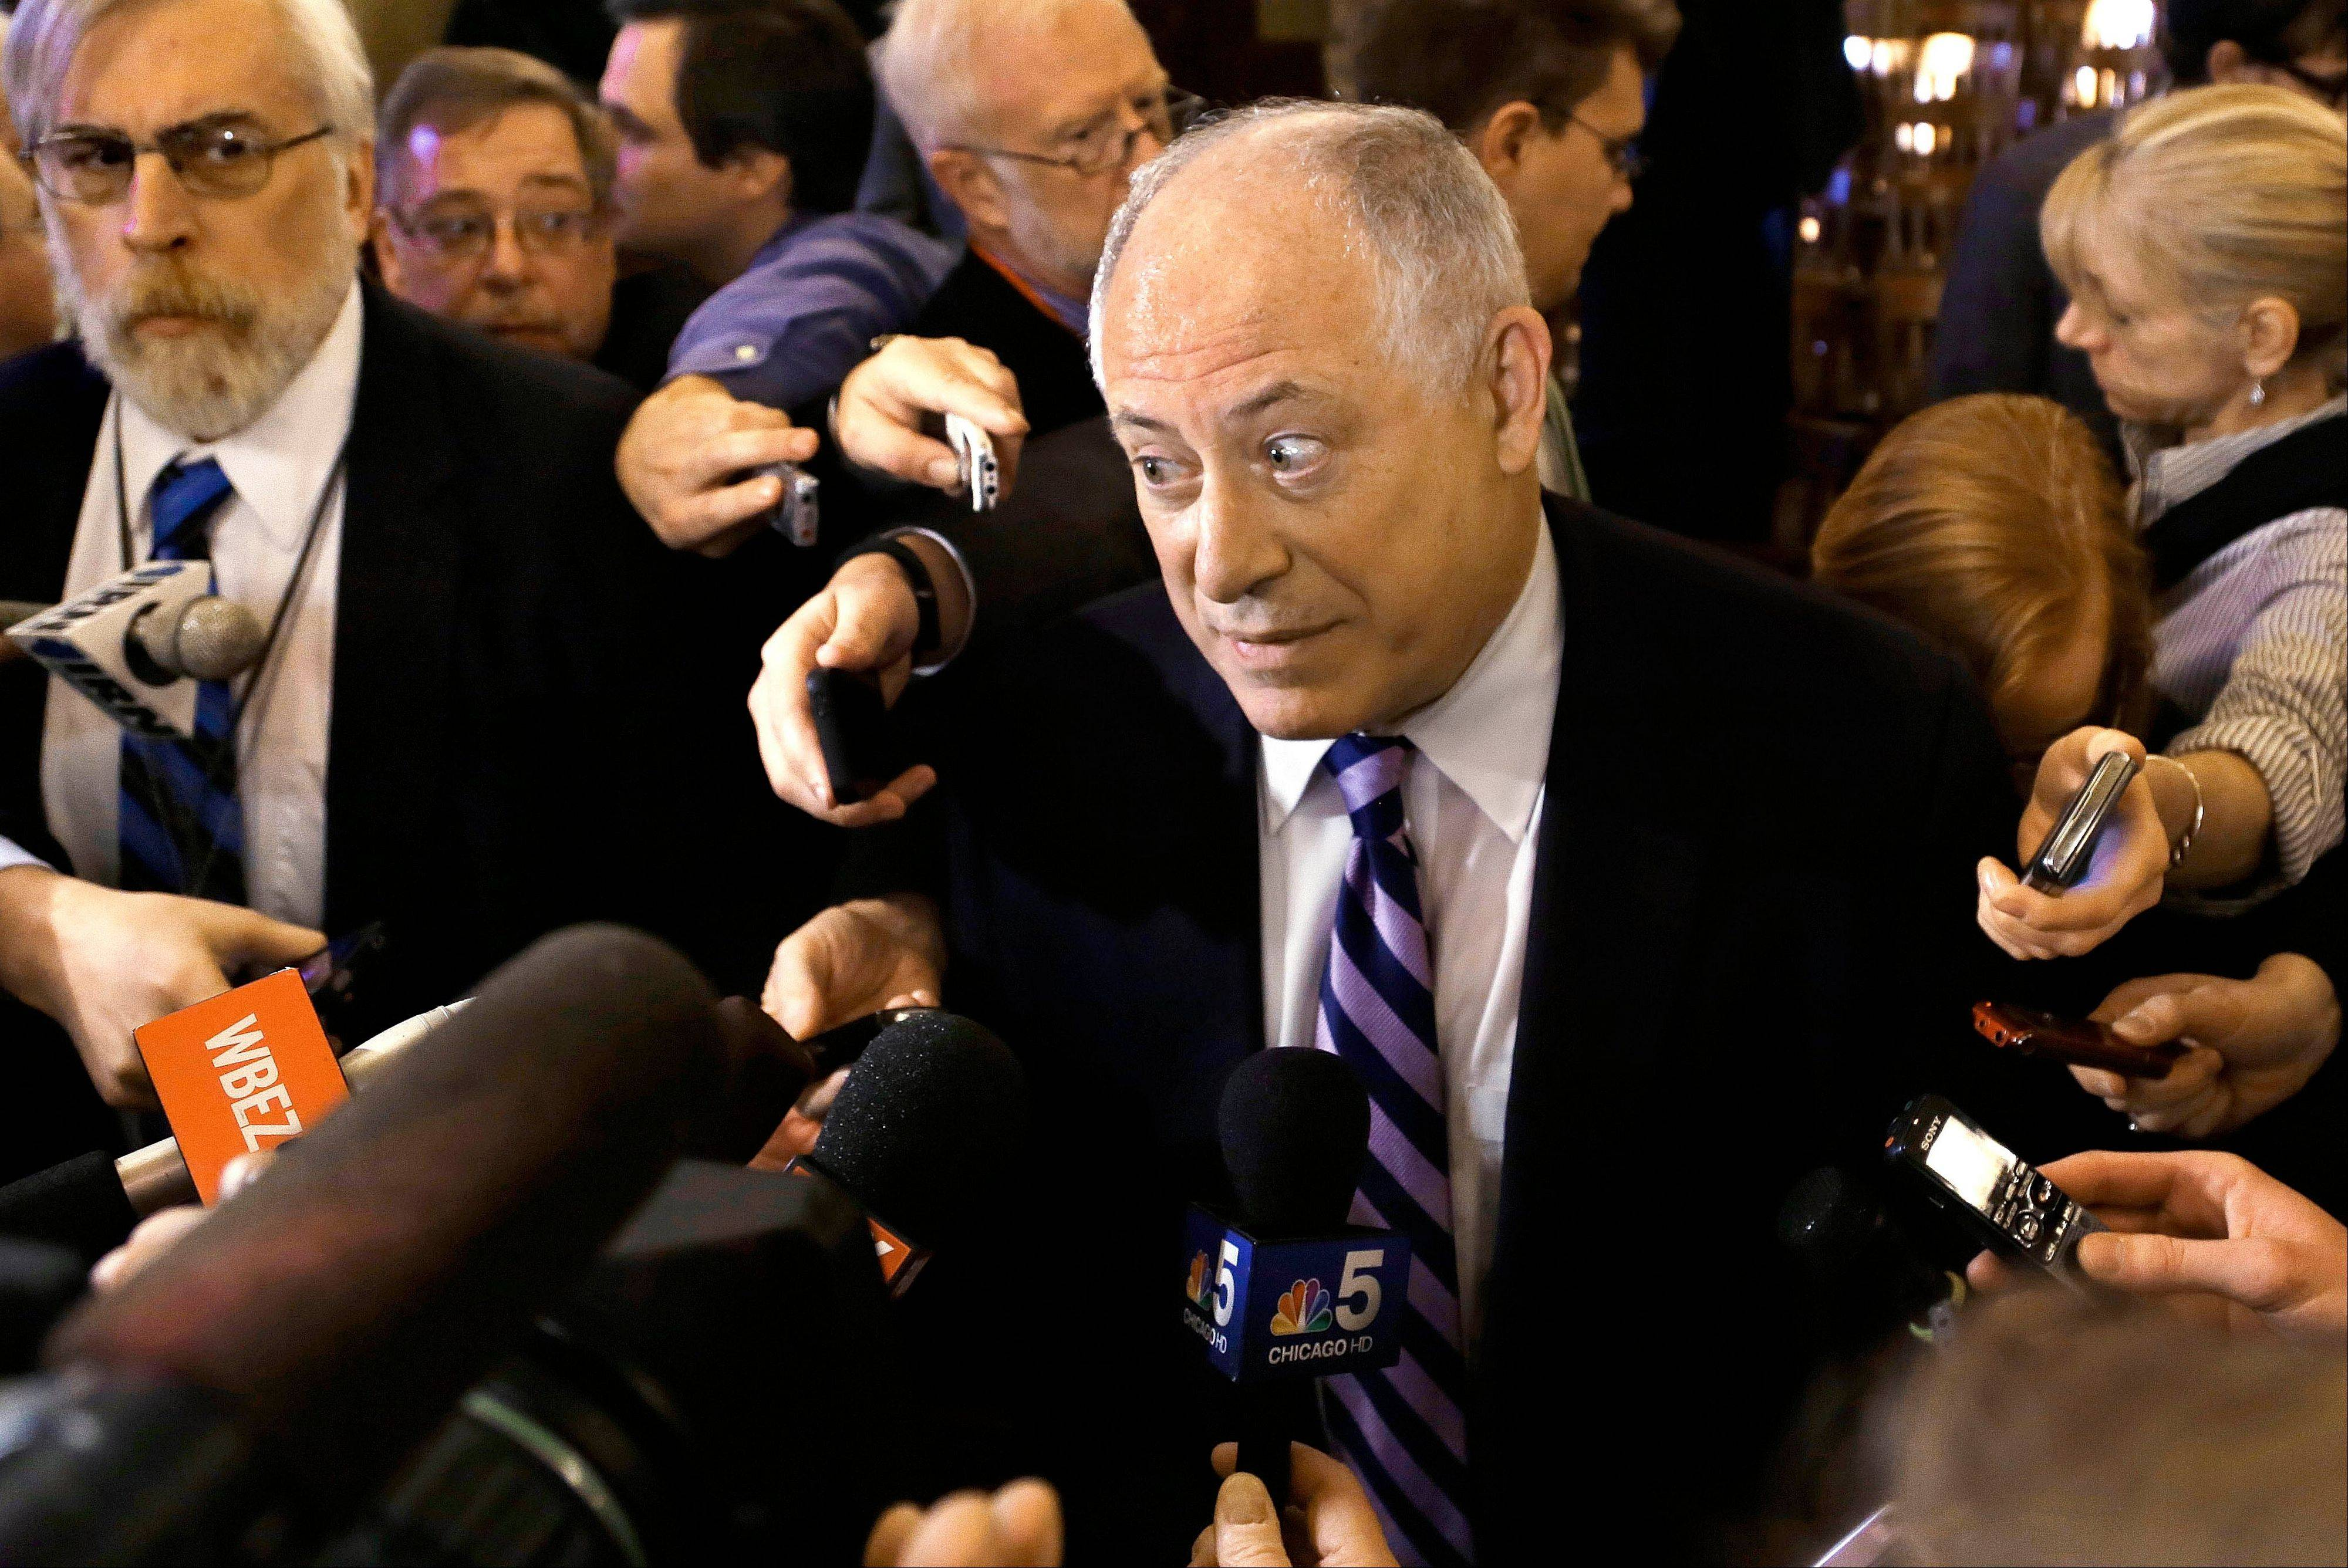 Gov. Pat Quinn is hinting his State of the State speech will remind the public how the state's image has been cleaned up under his watch.